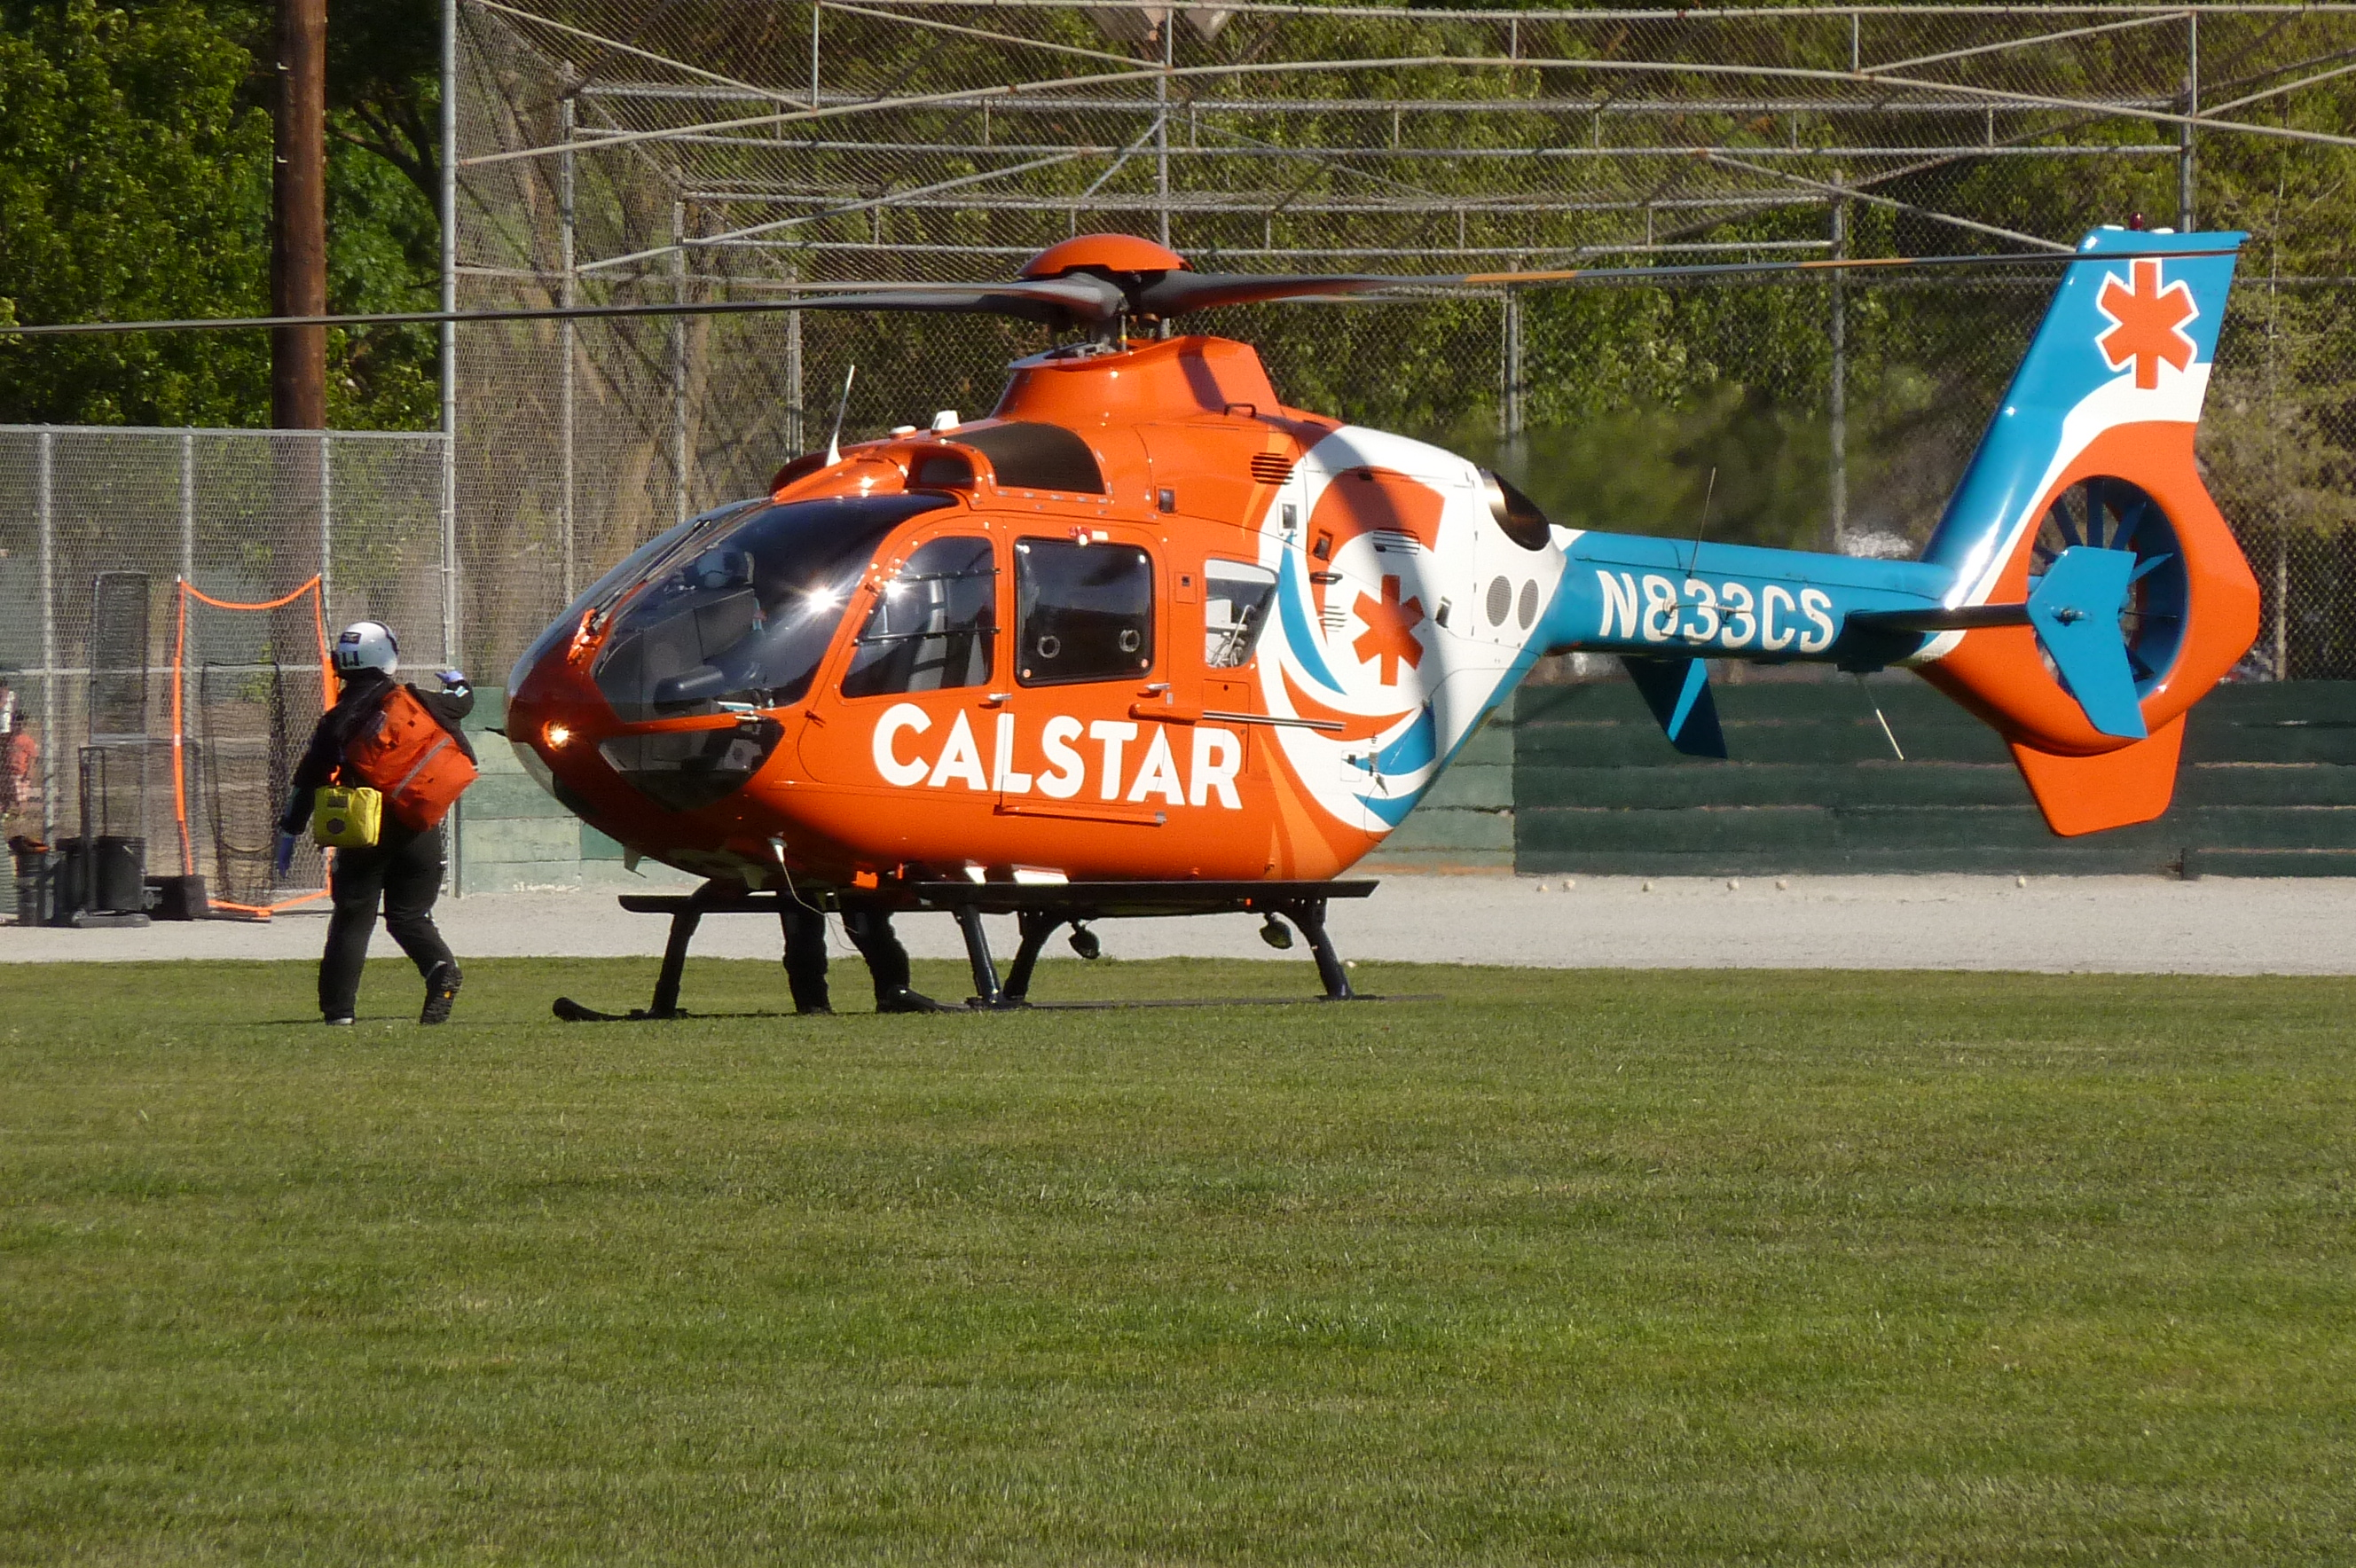 shock trauma helicopter with 70108 Calstar Ec 135 Livery on Al Taqaddum in addition File Defense gov photo essay 120723 A KJ310 008 furthermore P738577365 together with 431905240 as well P966451742.